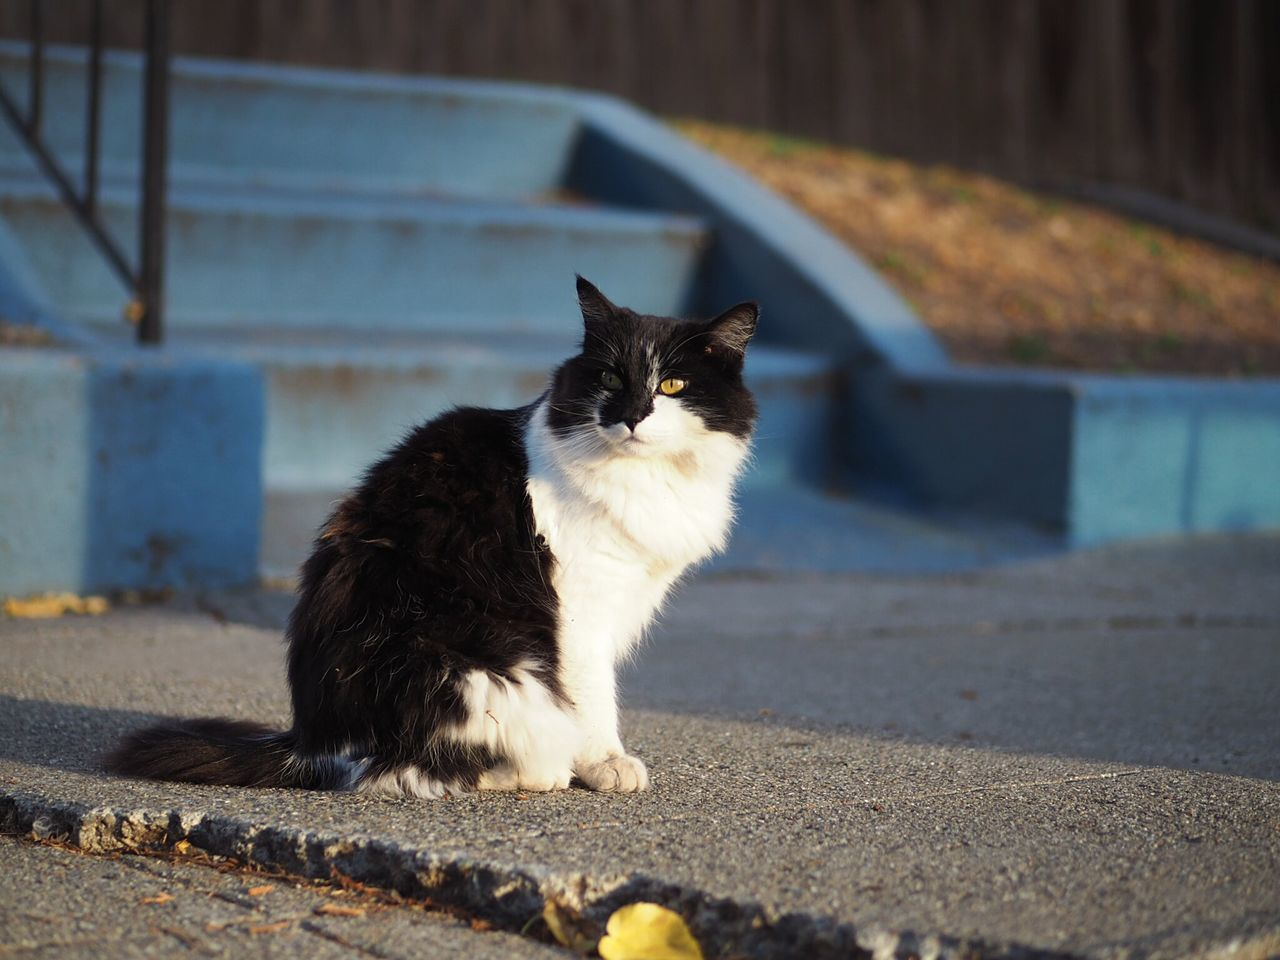 Taking Pictures Cat Meow Cat♡ One Animal Domestic Animals Animal Themes Domestic Cat Pets Full Length Outdoors Shallow Depth Of Field Onthestreet Blackandwhitecat Horizontal Surface Level Enjoying Sunset Selective Focus Vibrant Color Bright Yellow Street Life Cats Of EyeEm